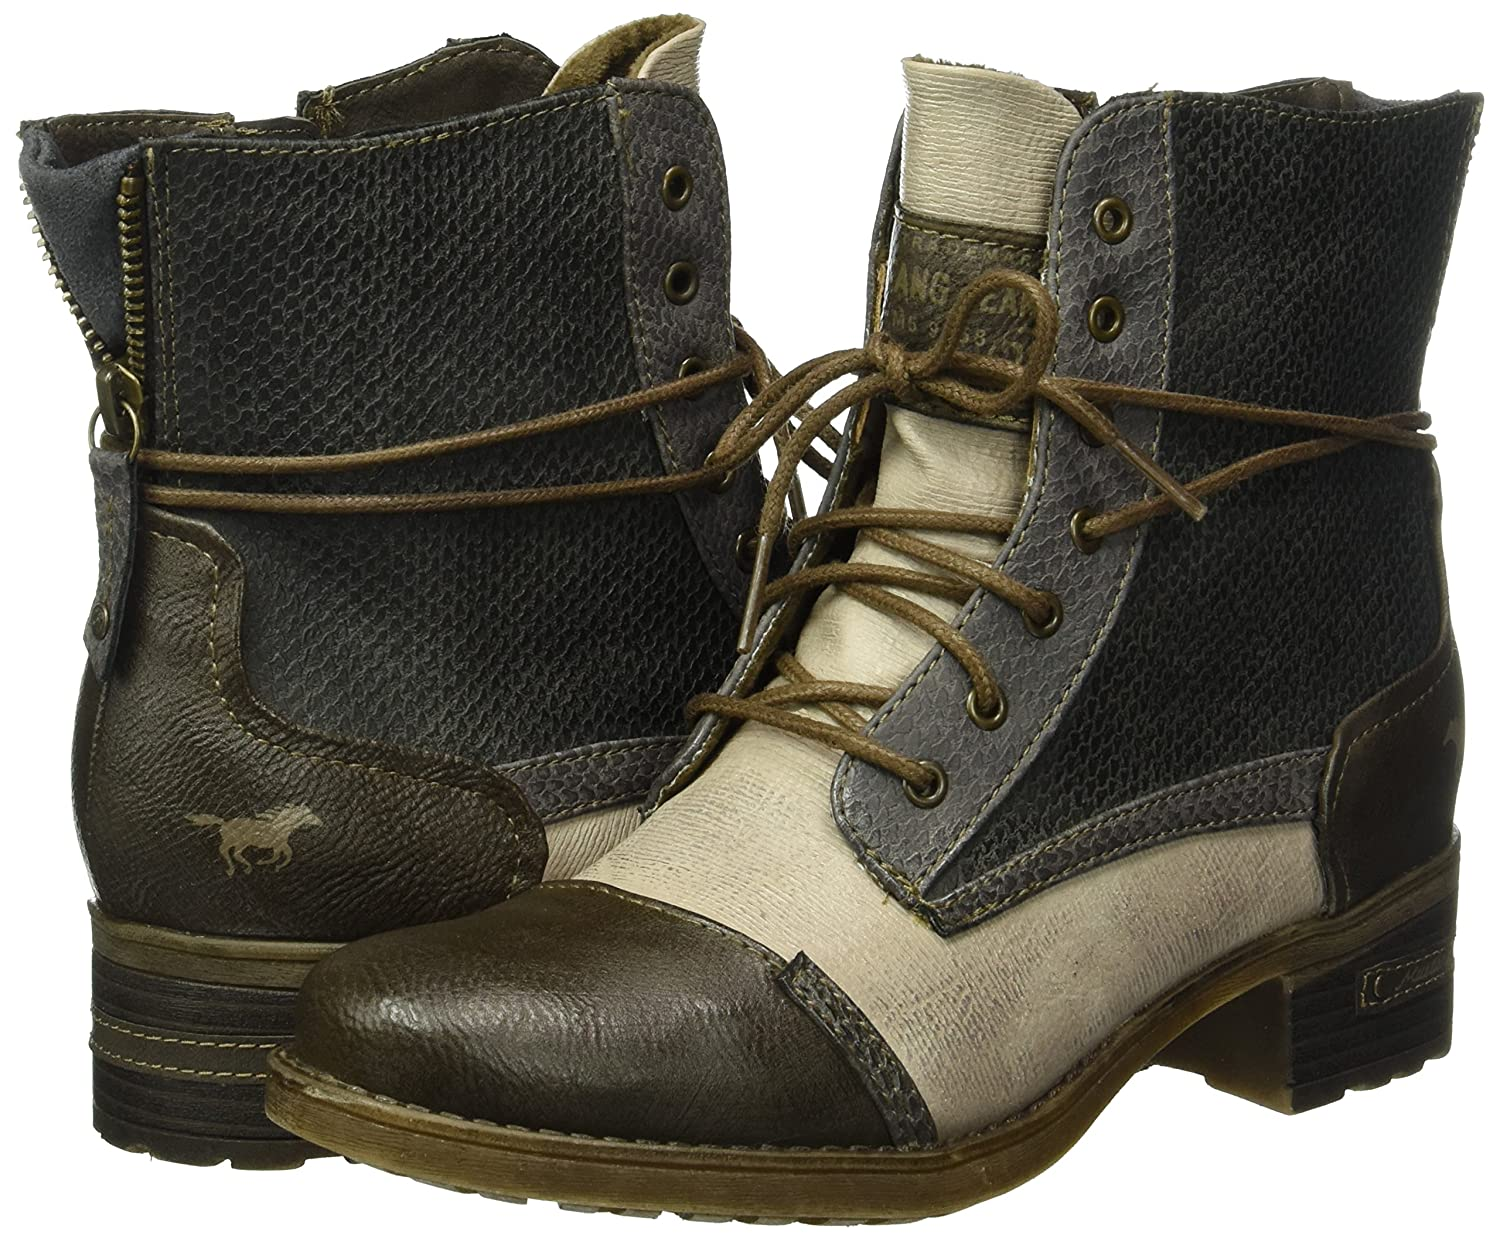 1229 Mustang Mustang Femme 503Bottes Classiques 1229 Classiques 1229 503Bottes Mustang Femme 503Bottes vmN0nw8